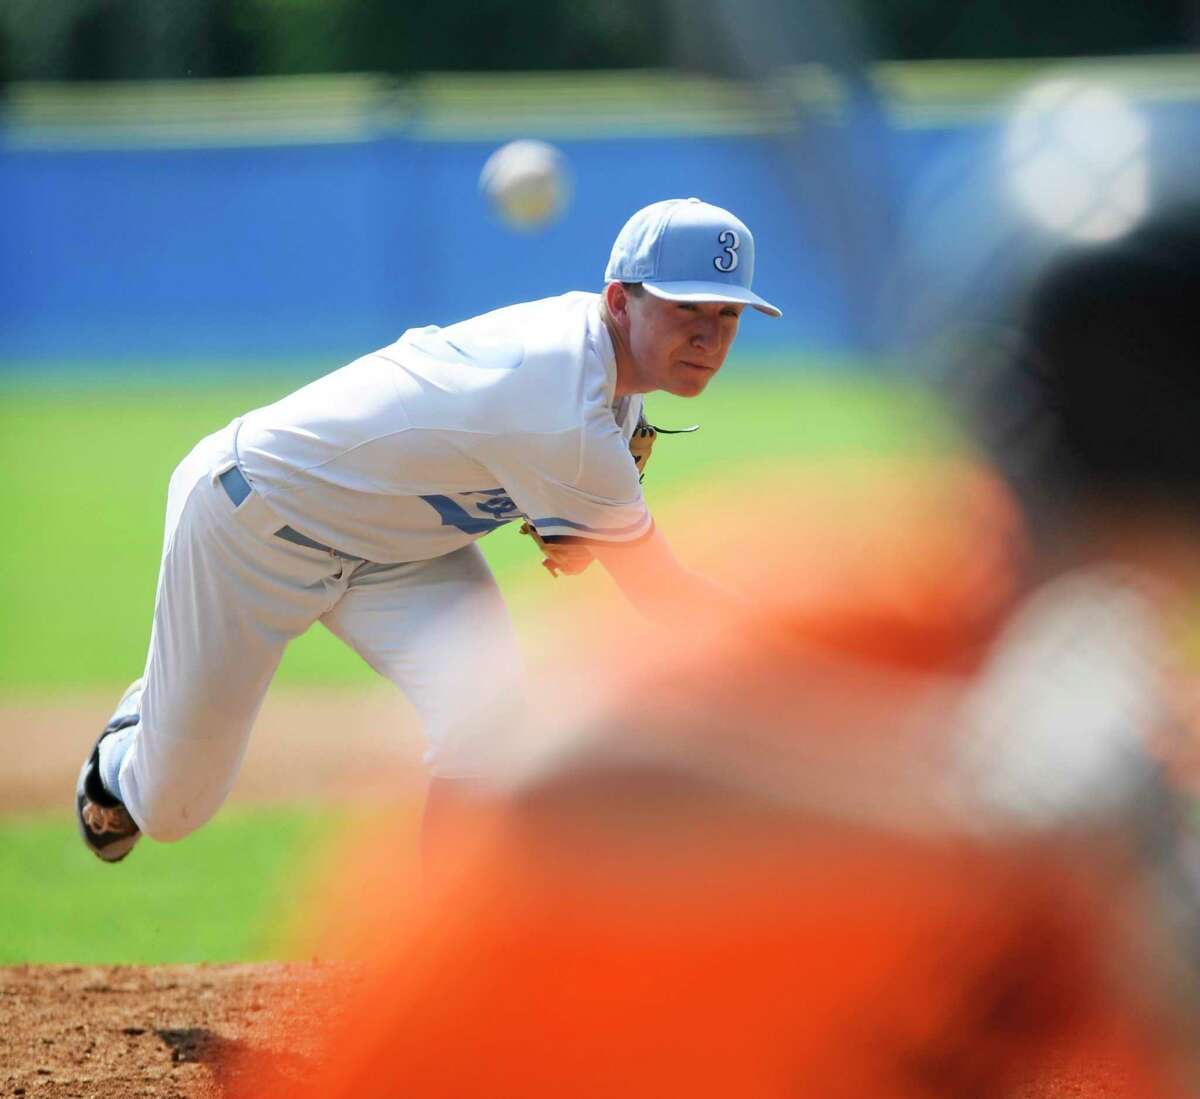 Stamford pitcher Grant Purpura delivers a throw in the second inning against Orange in the American Legion state tournament opener at Cubeta Stadium on Saturday in Stamford.